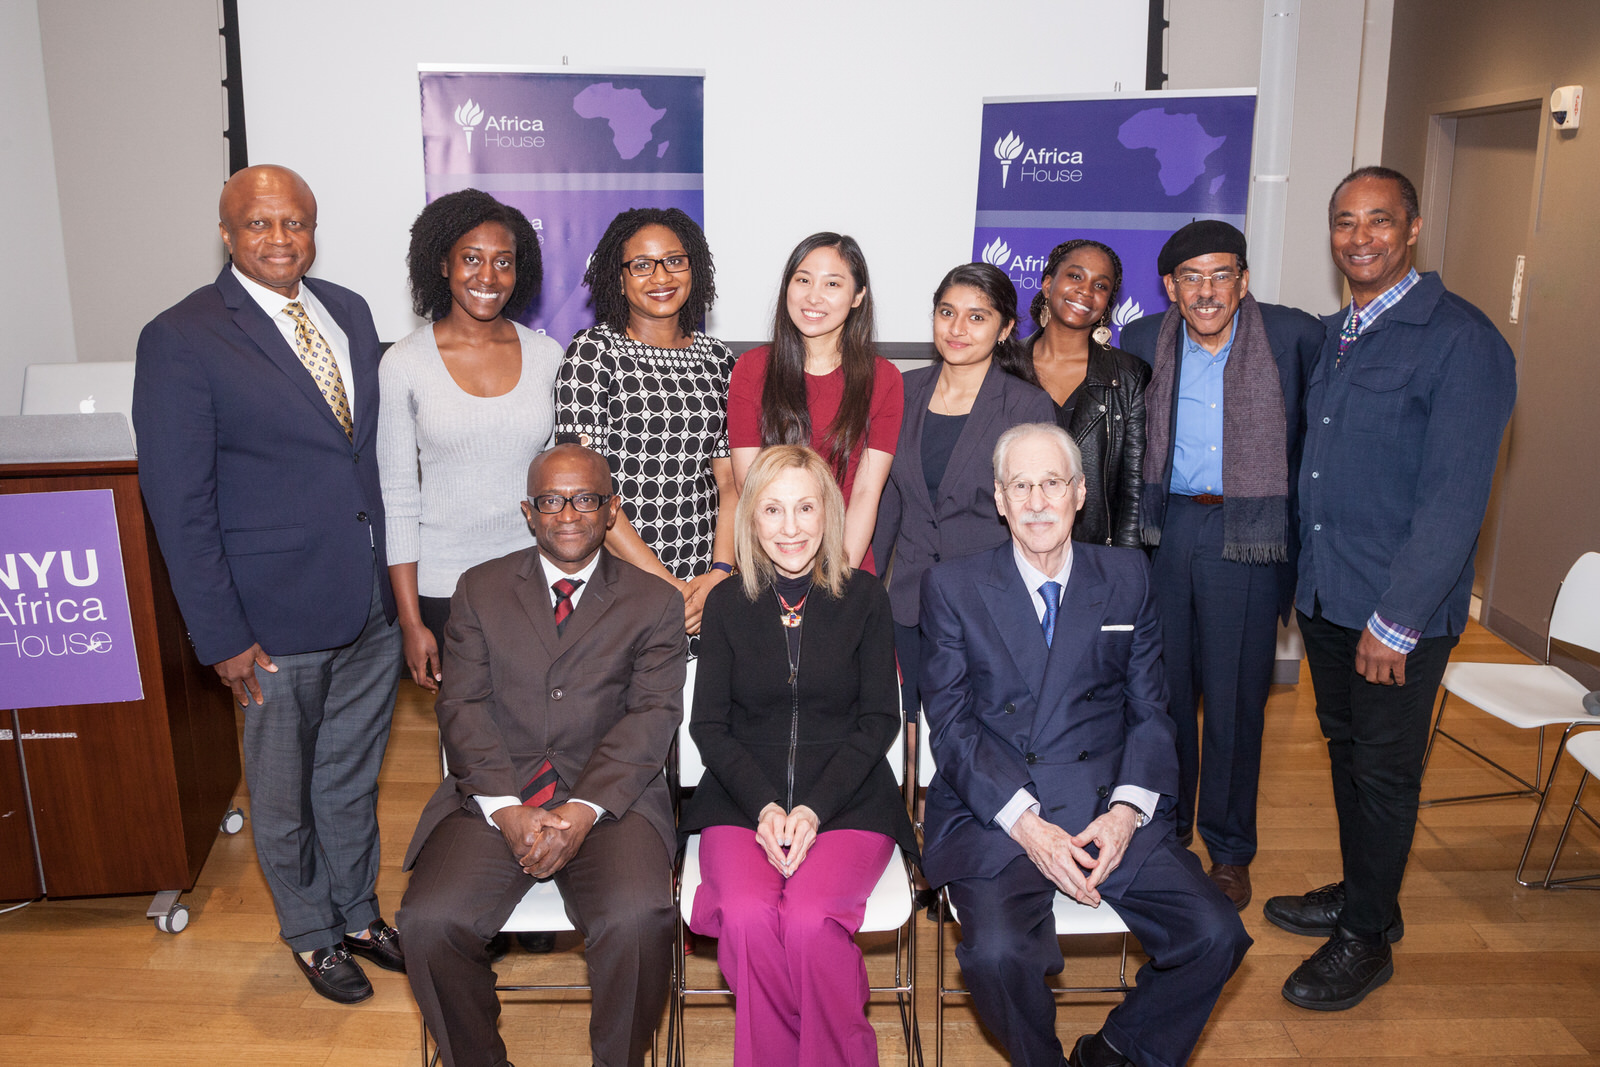 2019 Africa House Fellowship Presentations and Awards Ceremony